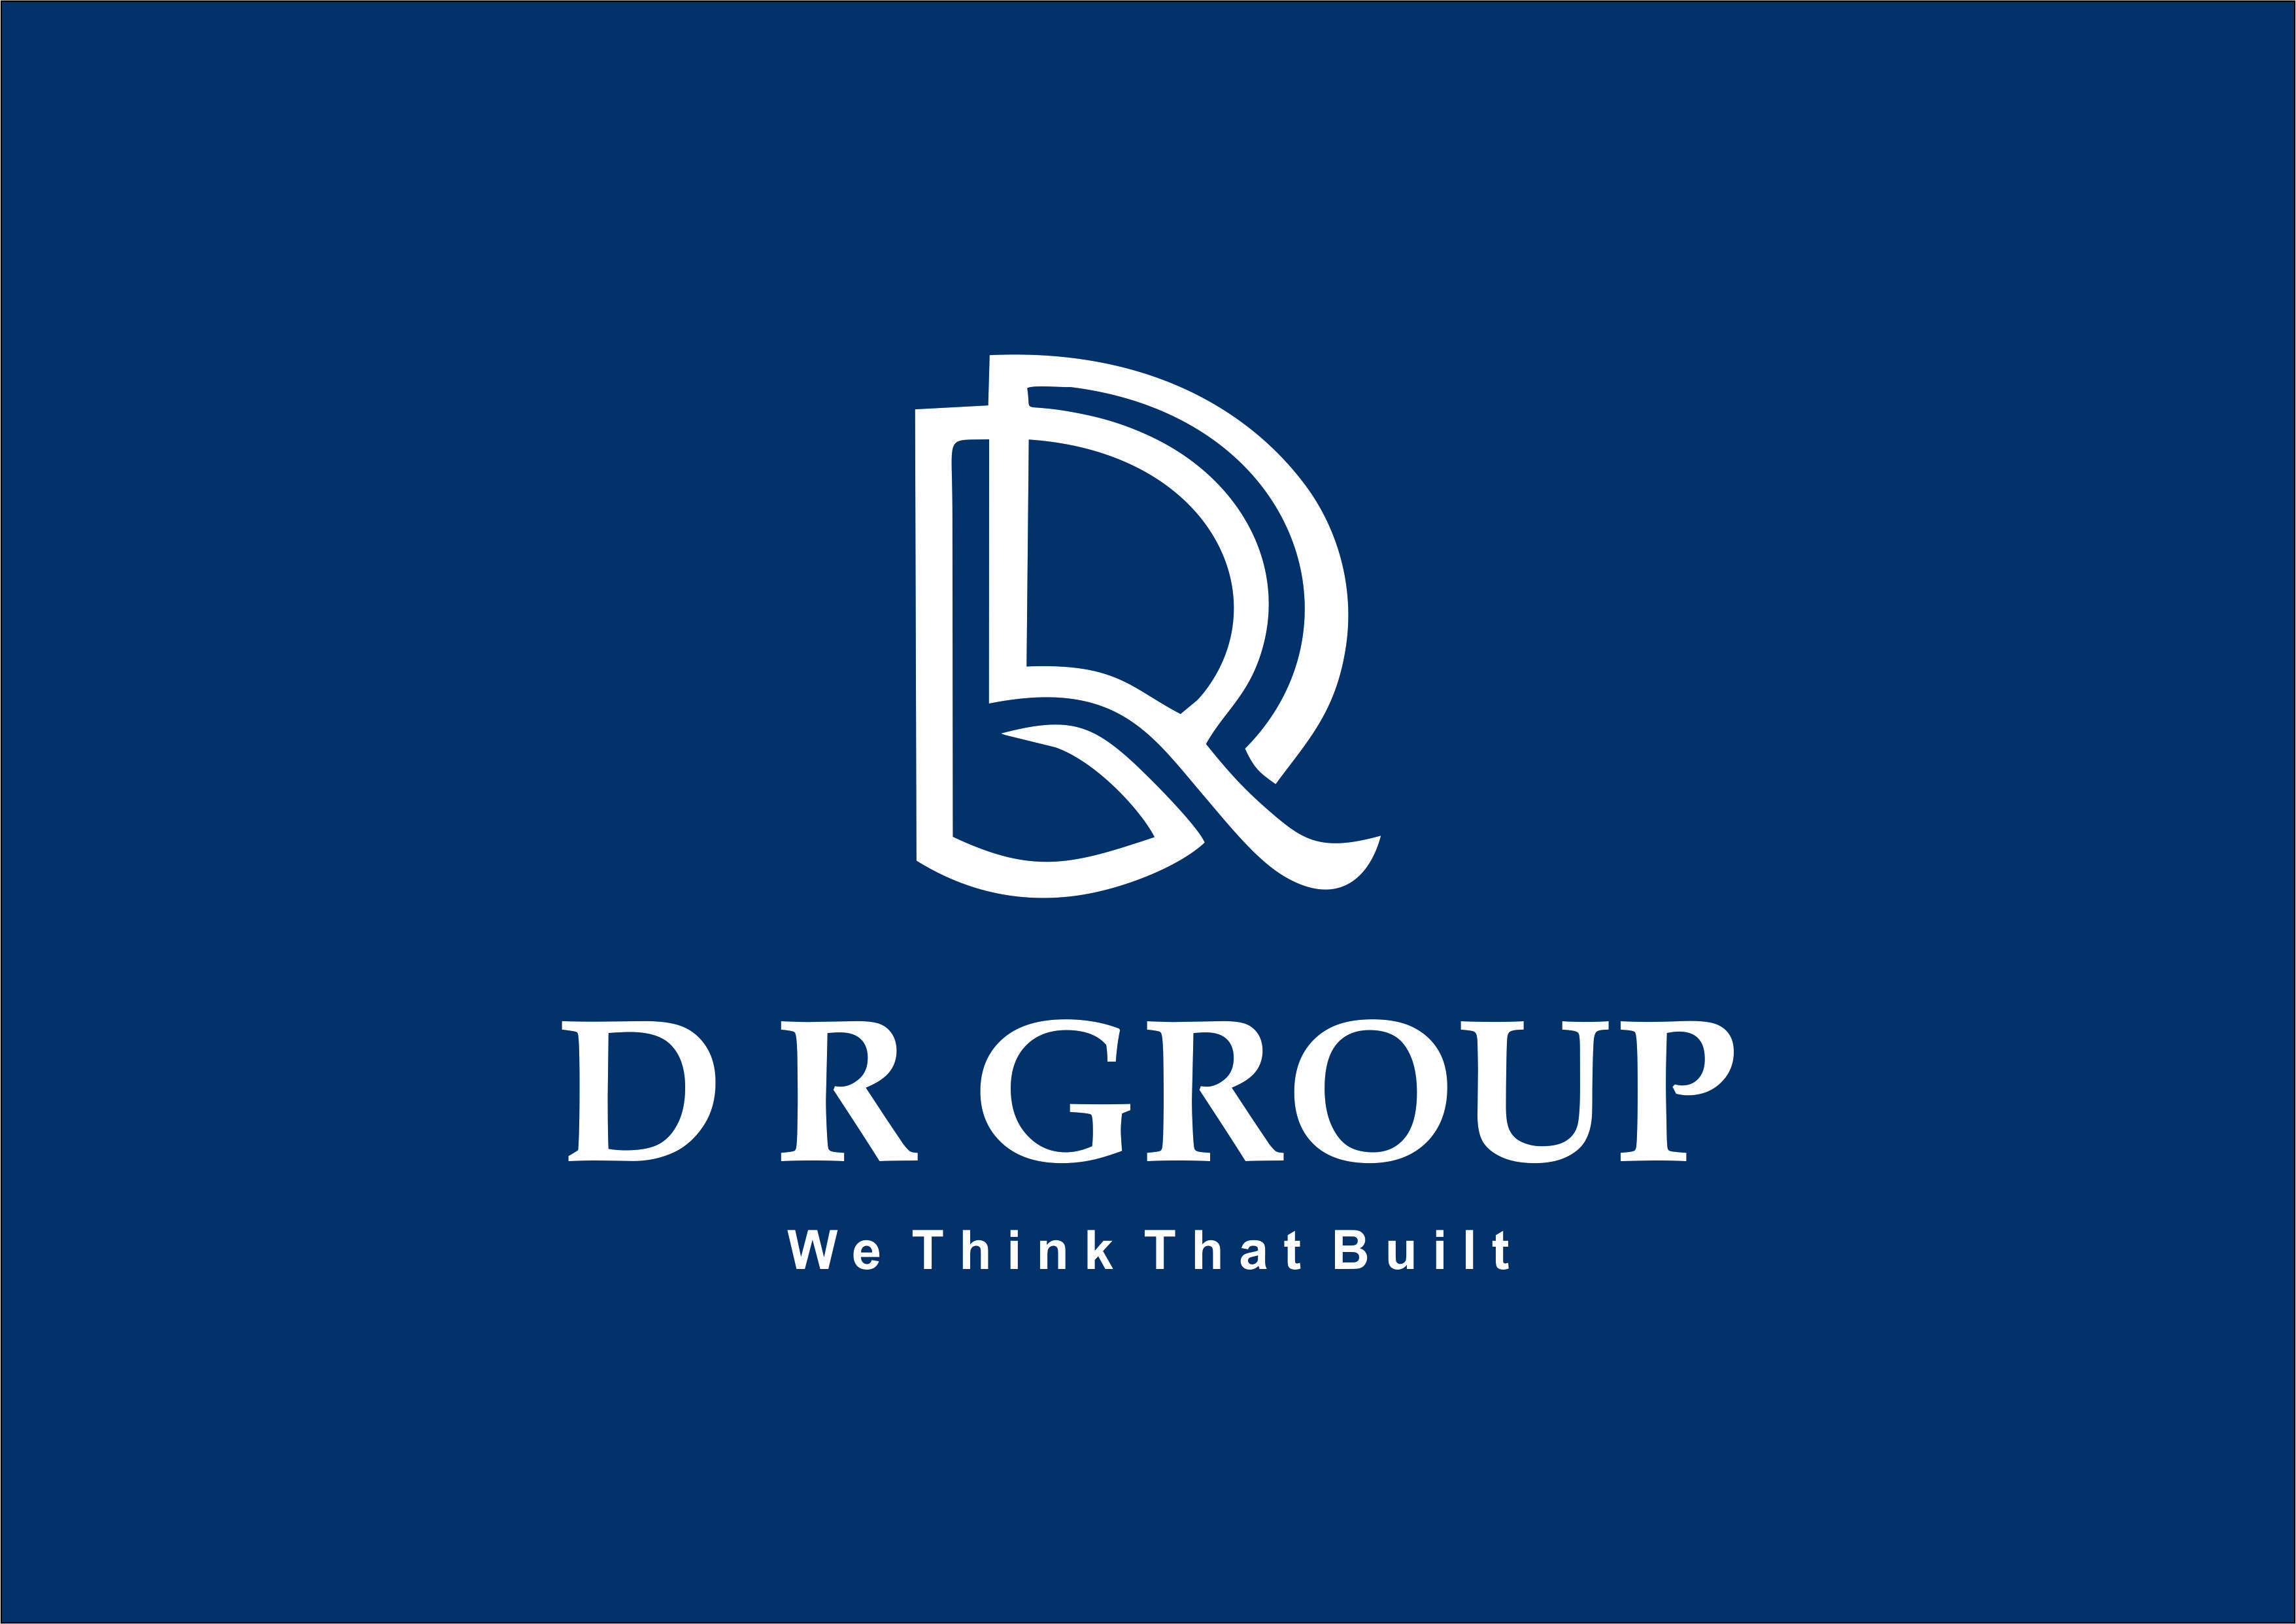 DR Group